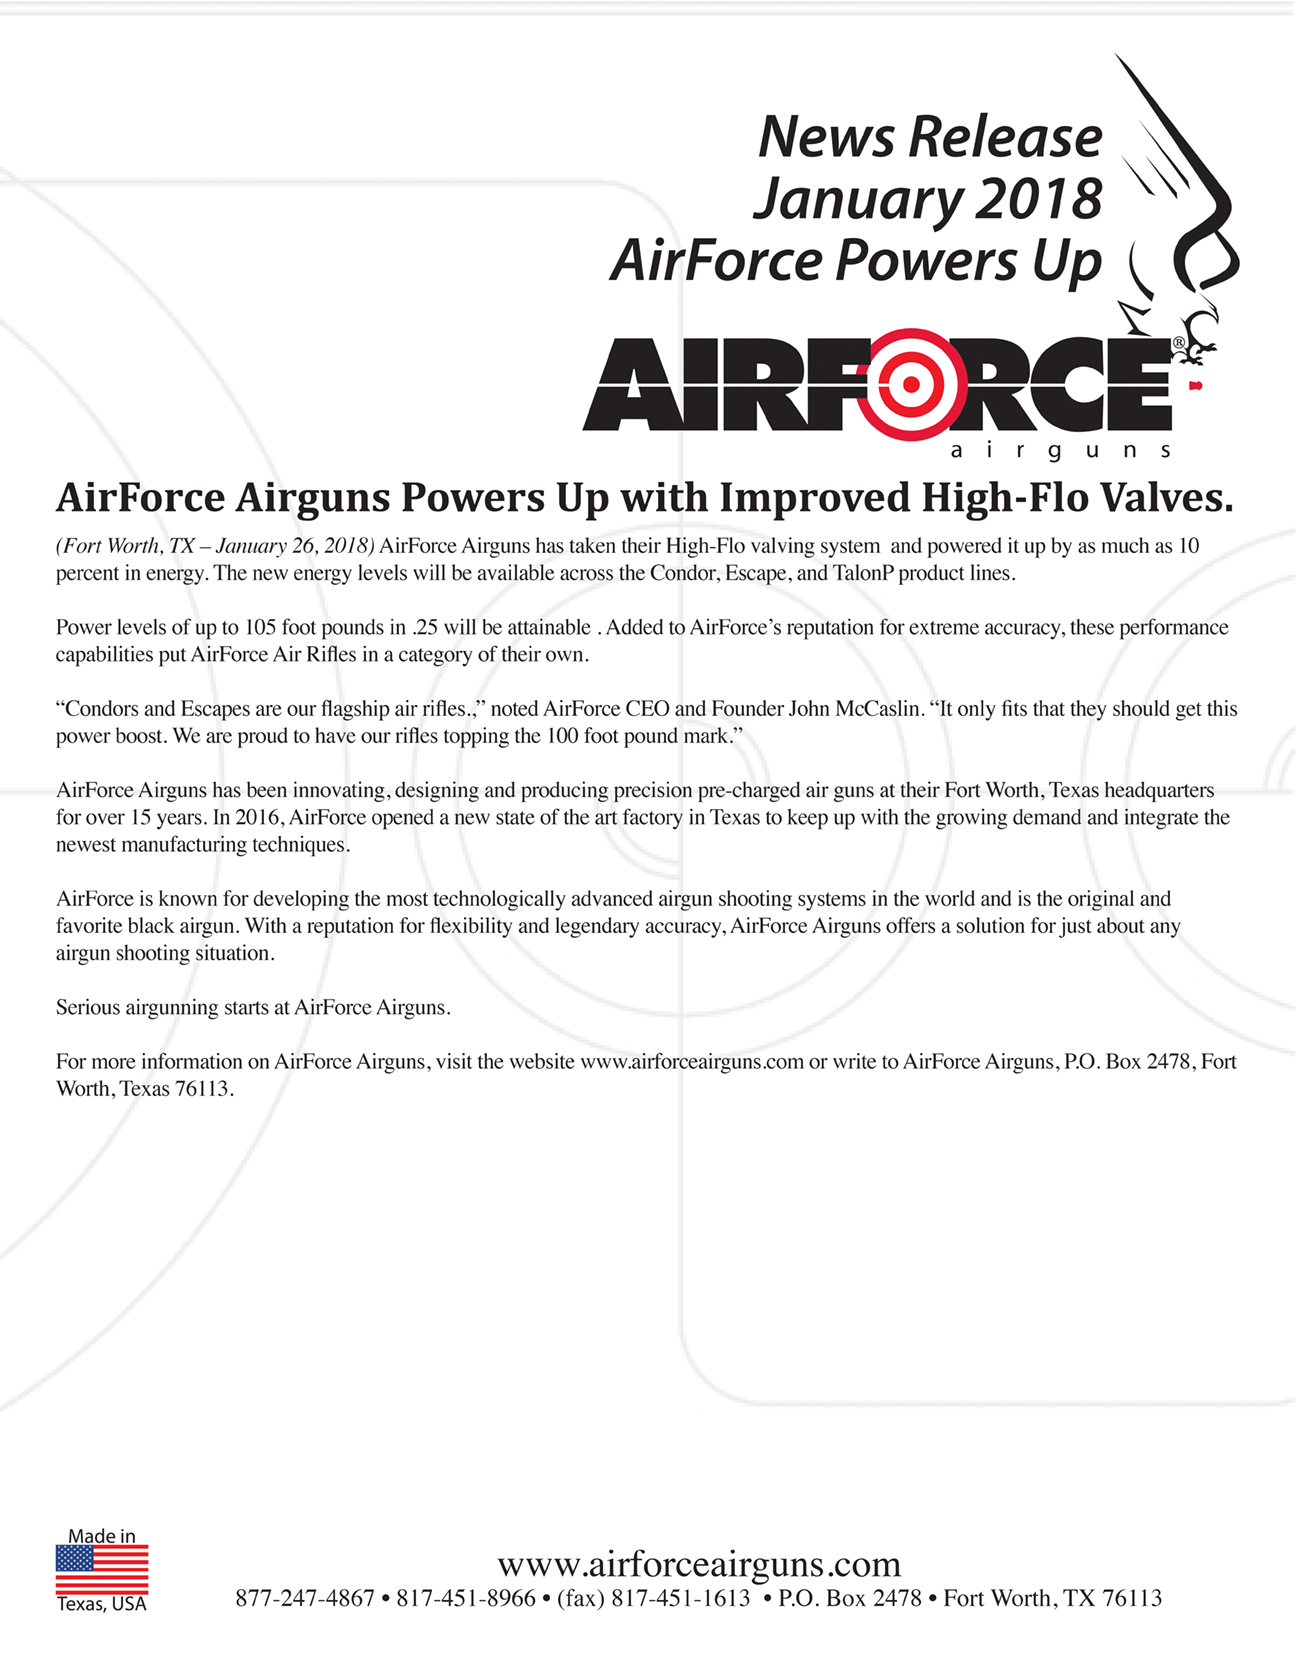 AirForce Airguns Powers Up with Improved High-Flo Valves.